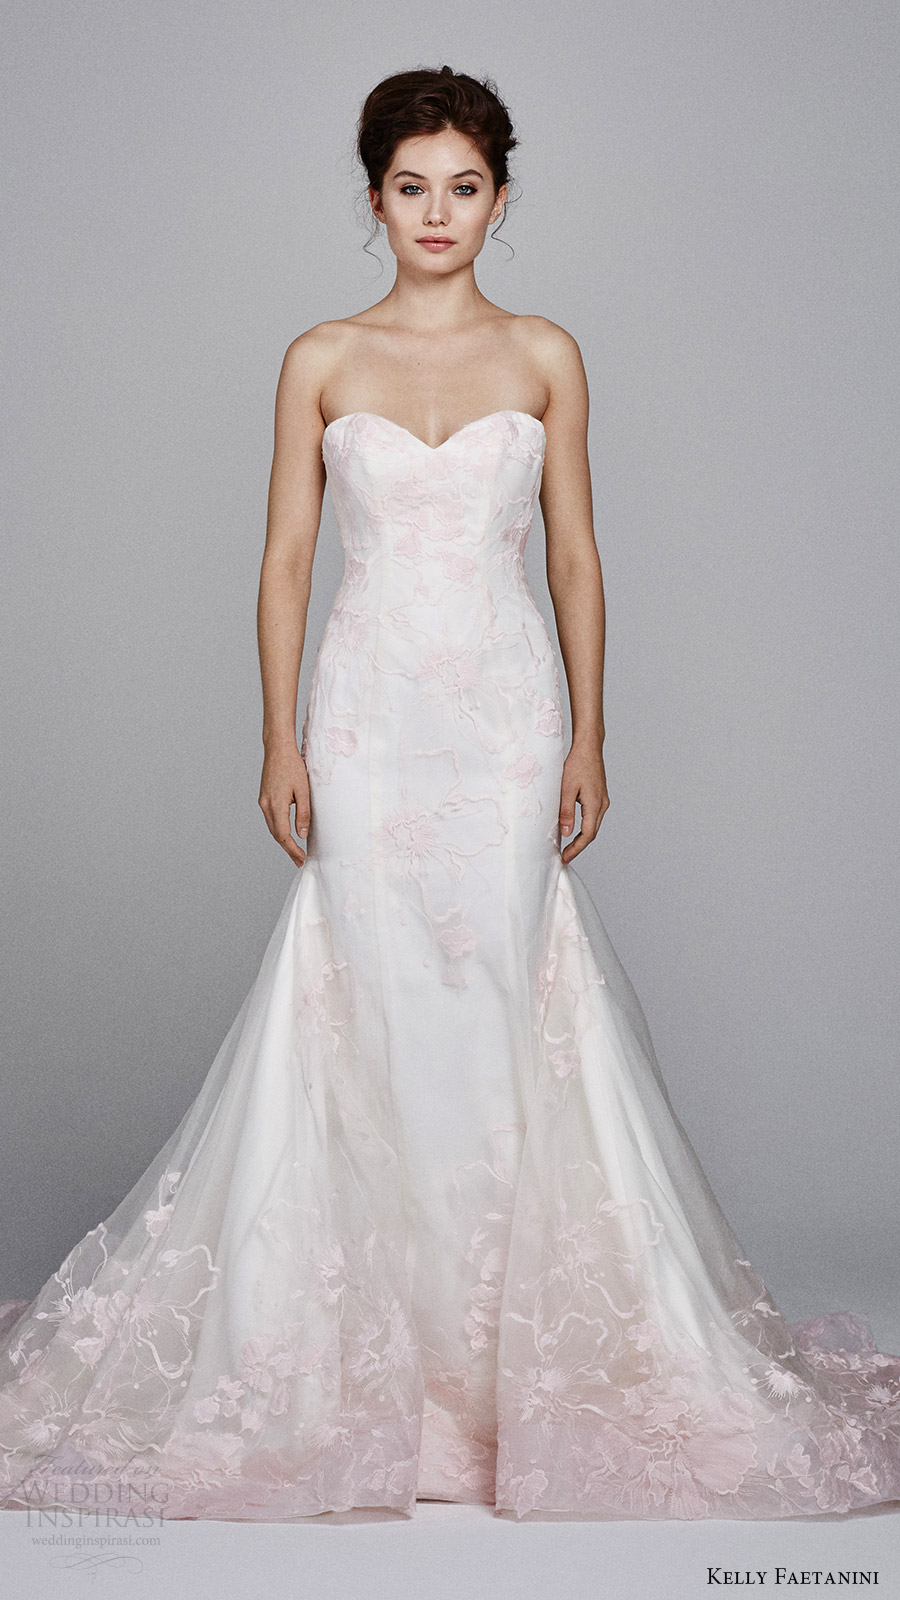 kelly faetanini bridal fall 2017 strapless sweetheart trumpet wedding dress (cherie) mv blush pink embroidery